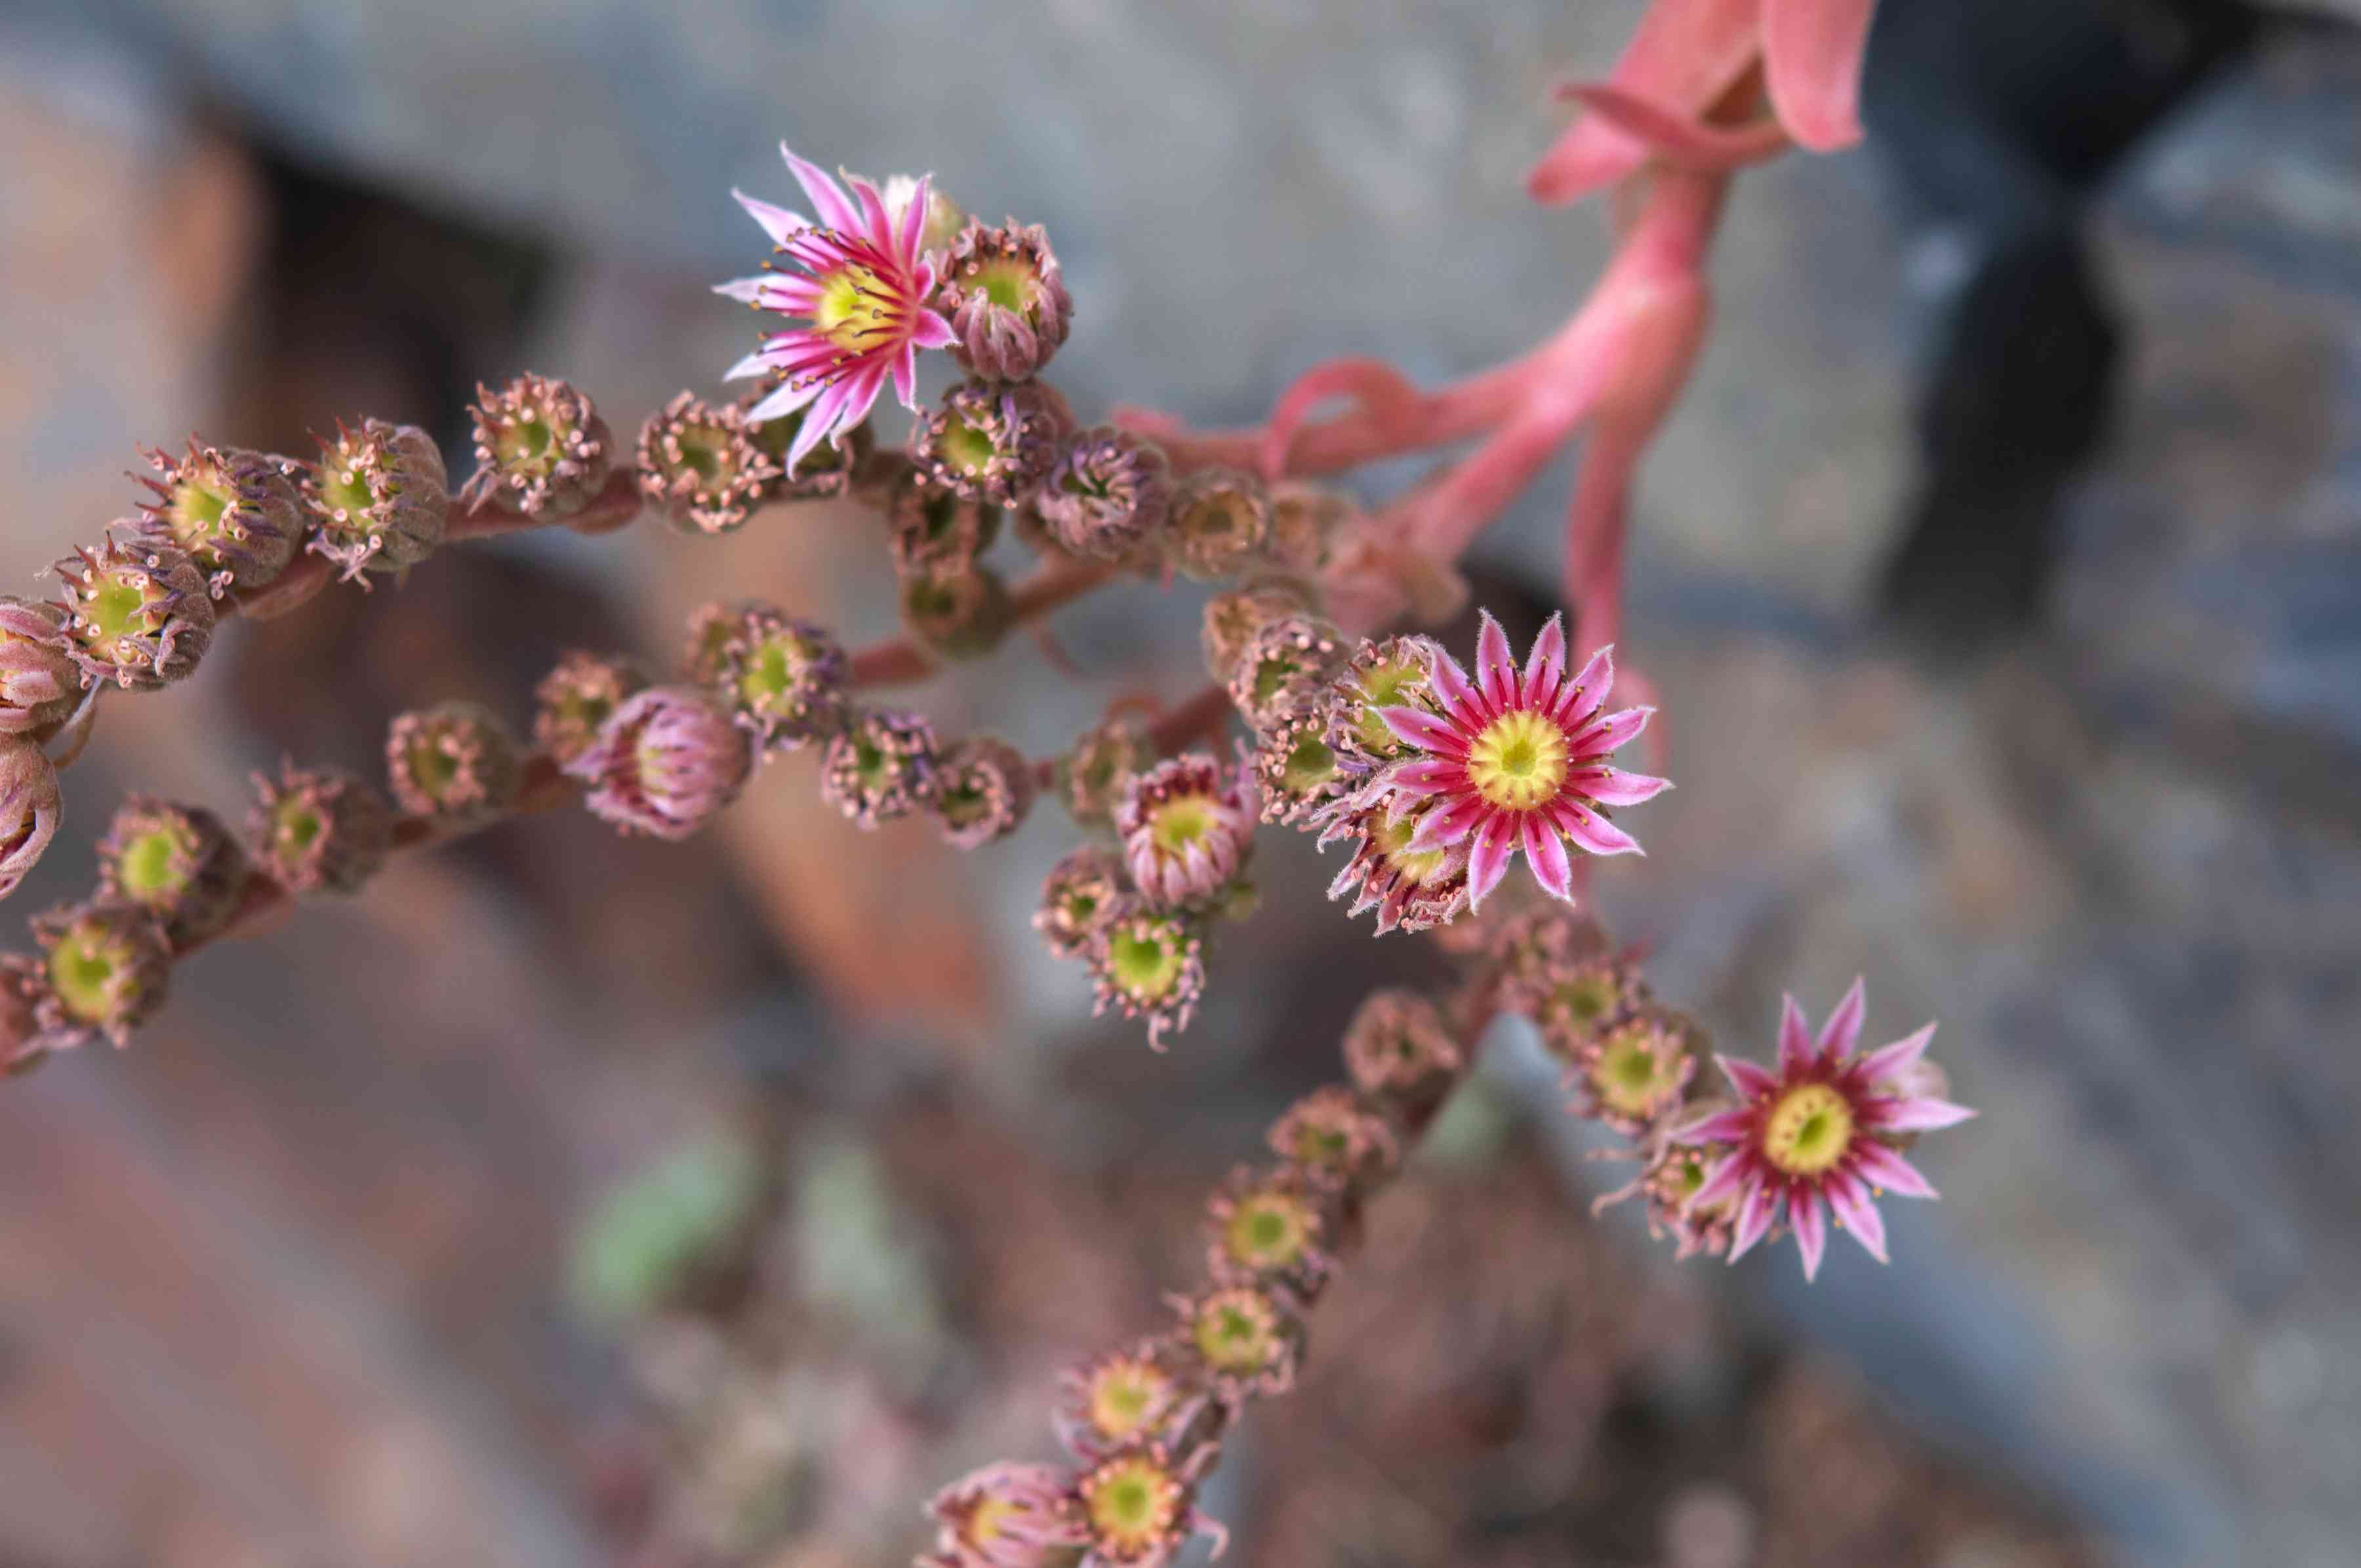 Hens and chicks succulent flower stalk with small pink flowers closeup